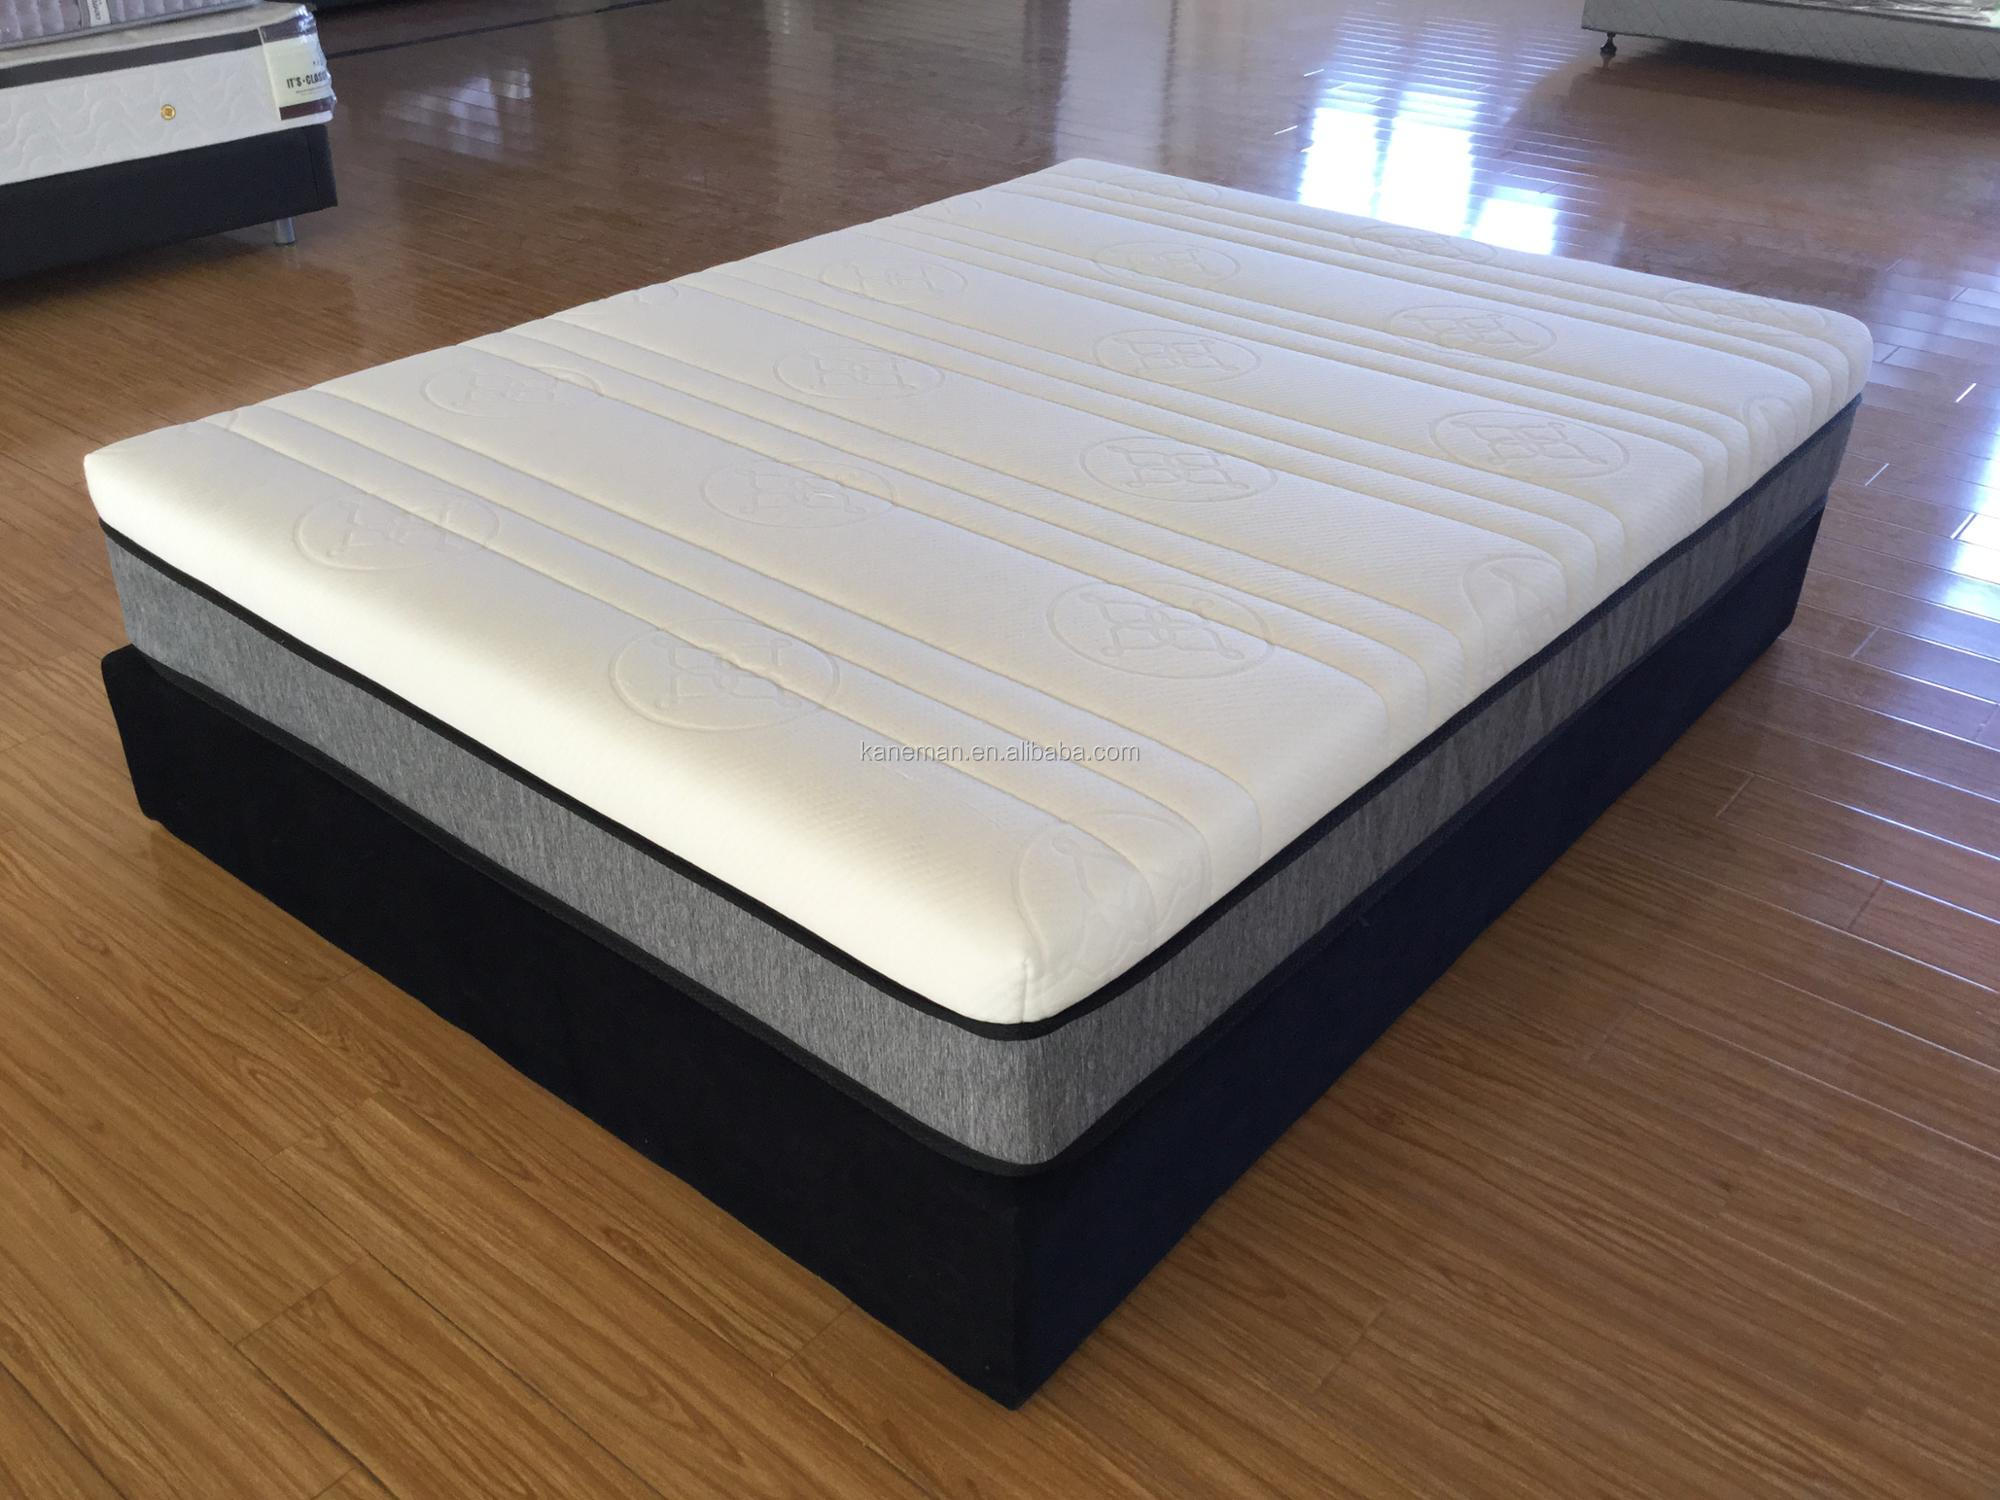 Naturlatex Matratze Rollen Oben Naturlatex Matratze Memory Foam Matratze In Einem Karton Buy Speicher Schaum Matratze Latex Matratze Roll Up Latex Memory Foam Matratze